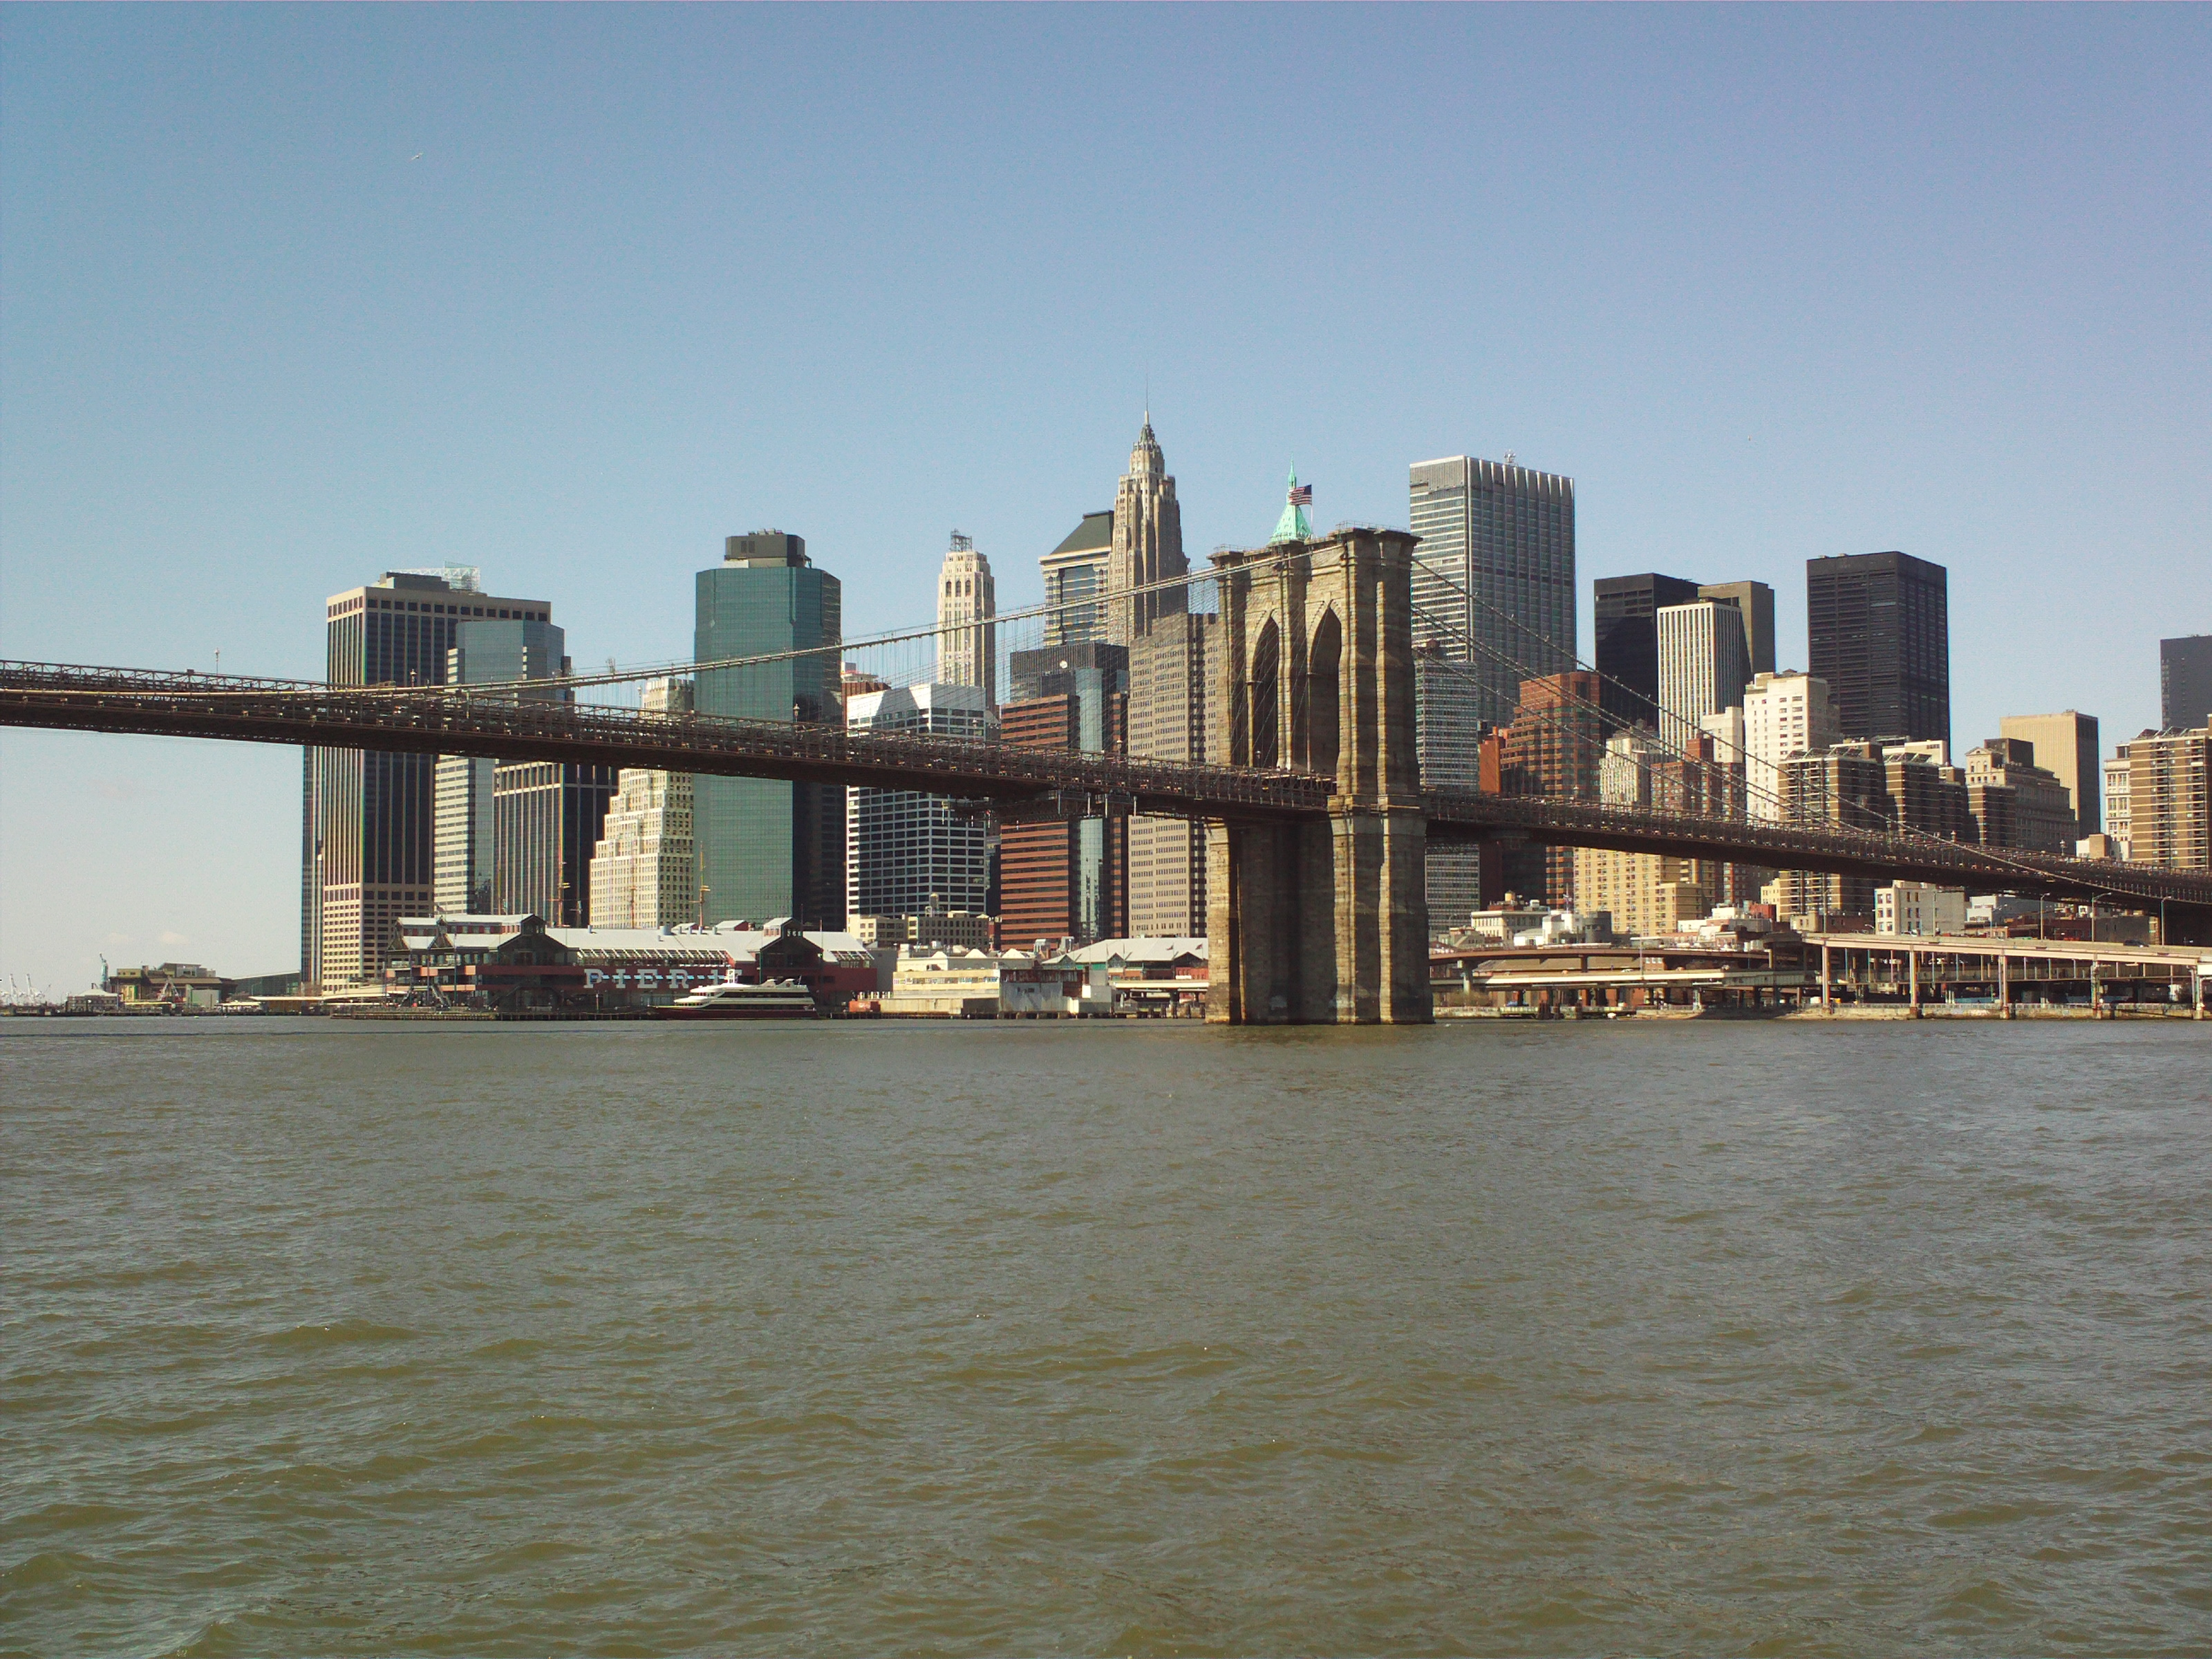 File:Brooklyn bridge and Manhattan.JPG